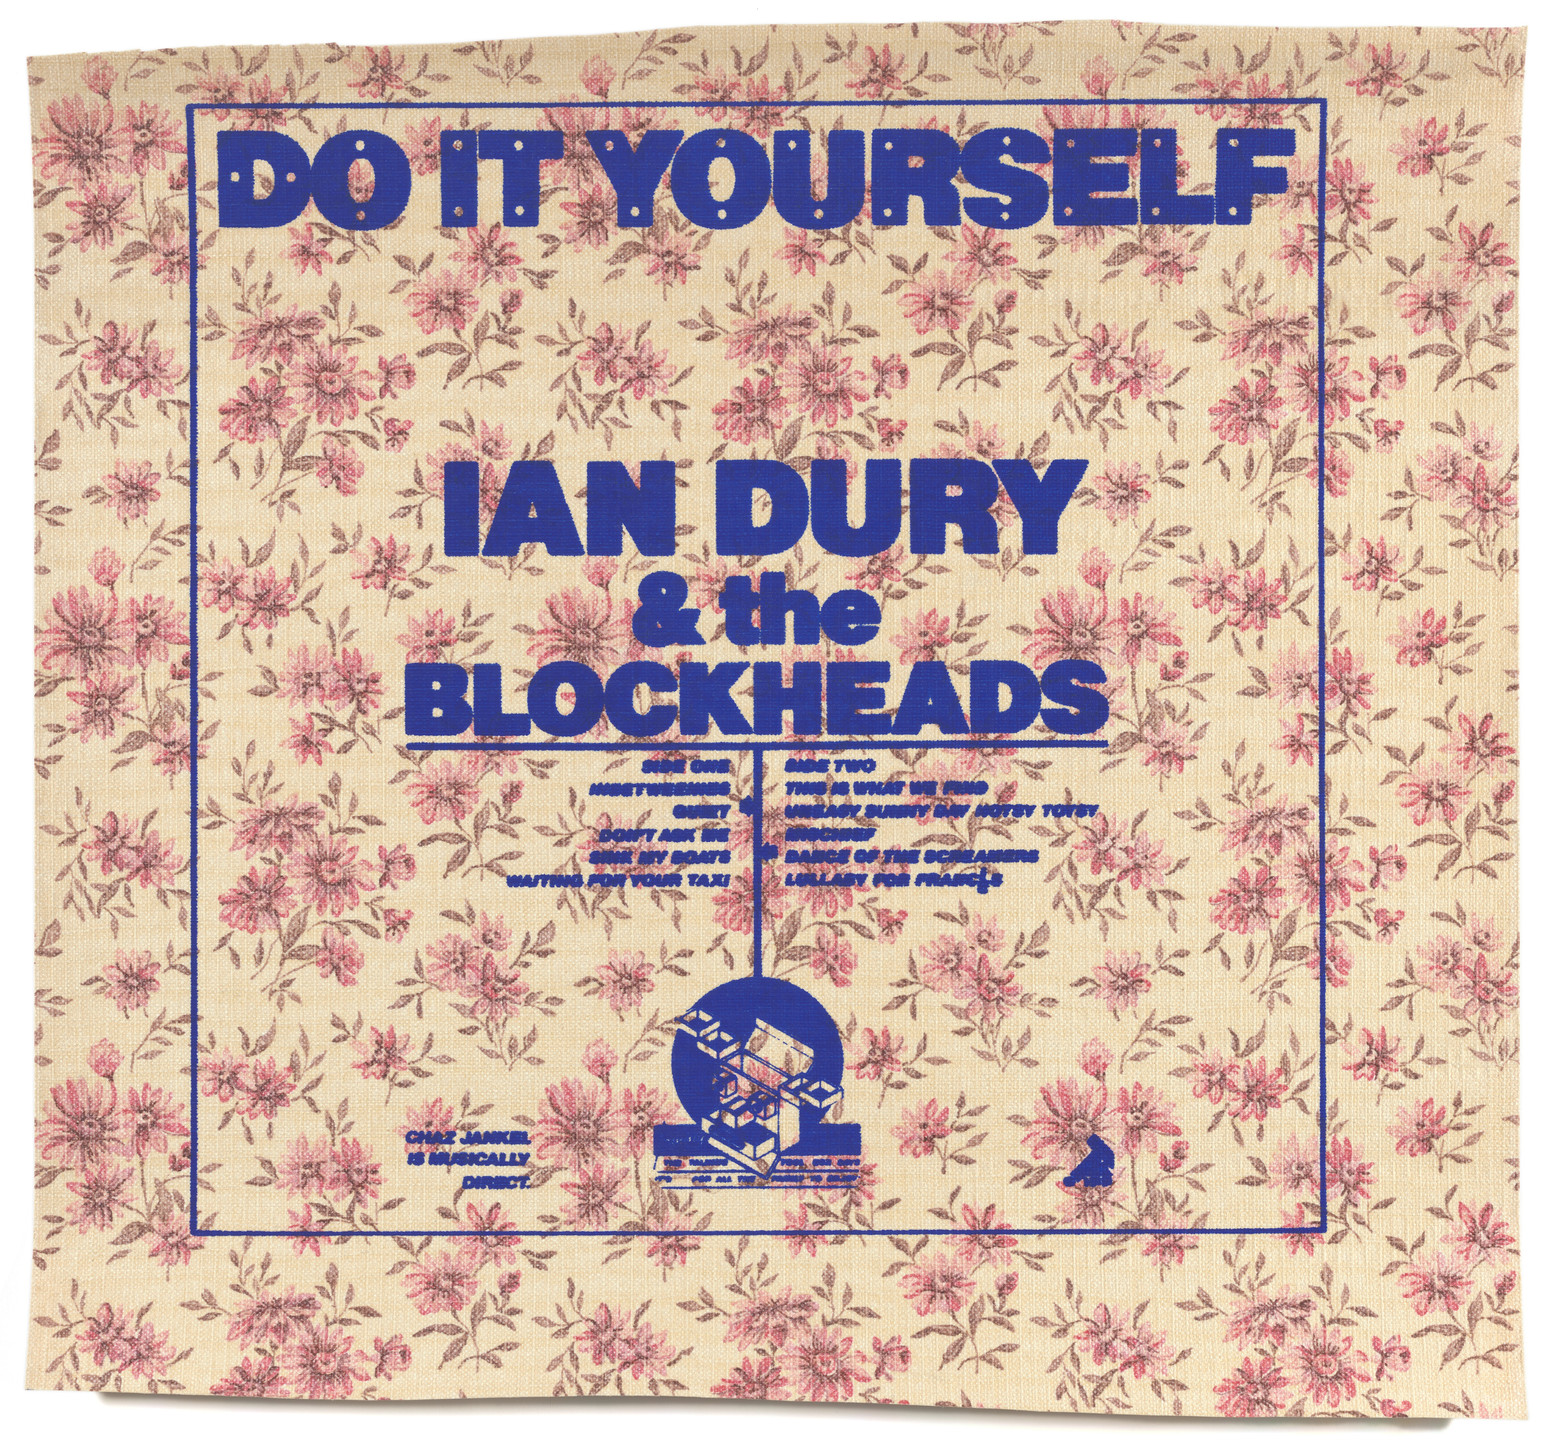 Barney Bubbles (Colin Fulcher). Ian Dury, Do It Yourself (Poster for album distributed by Stiff Records, London). 1979